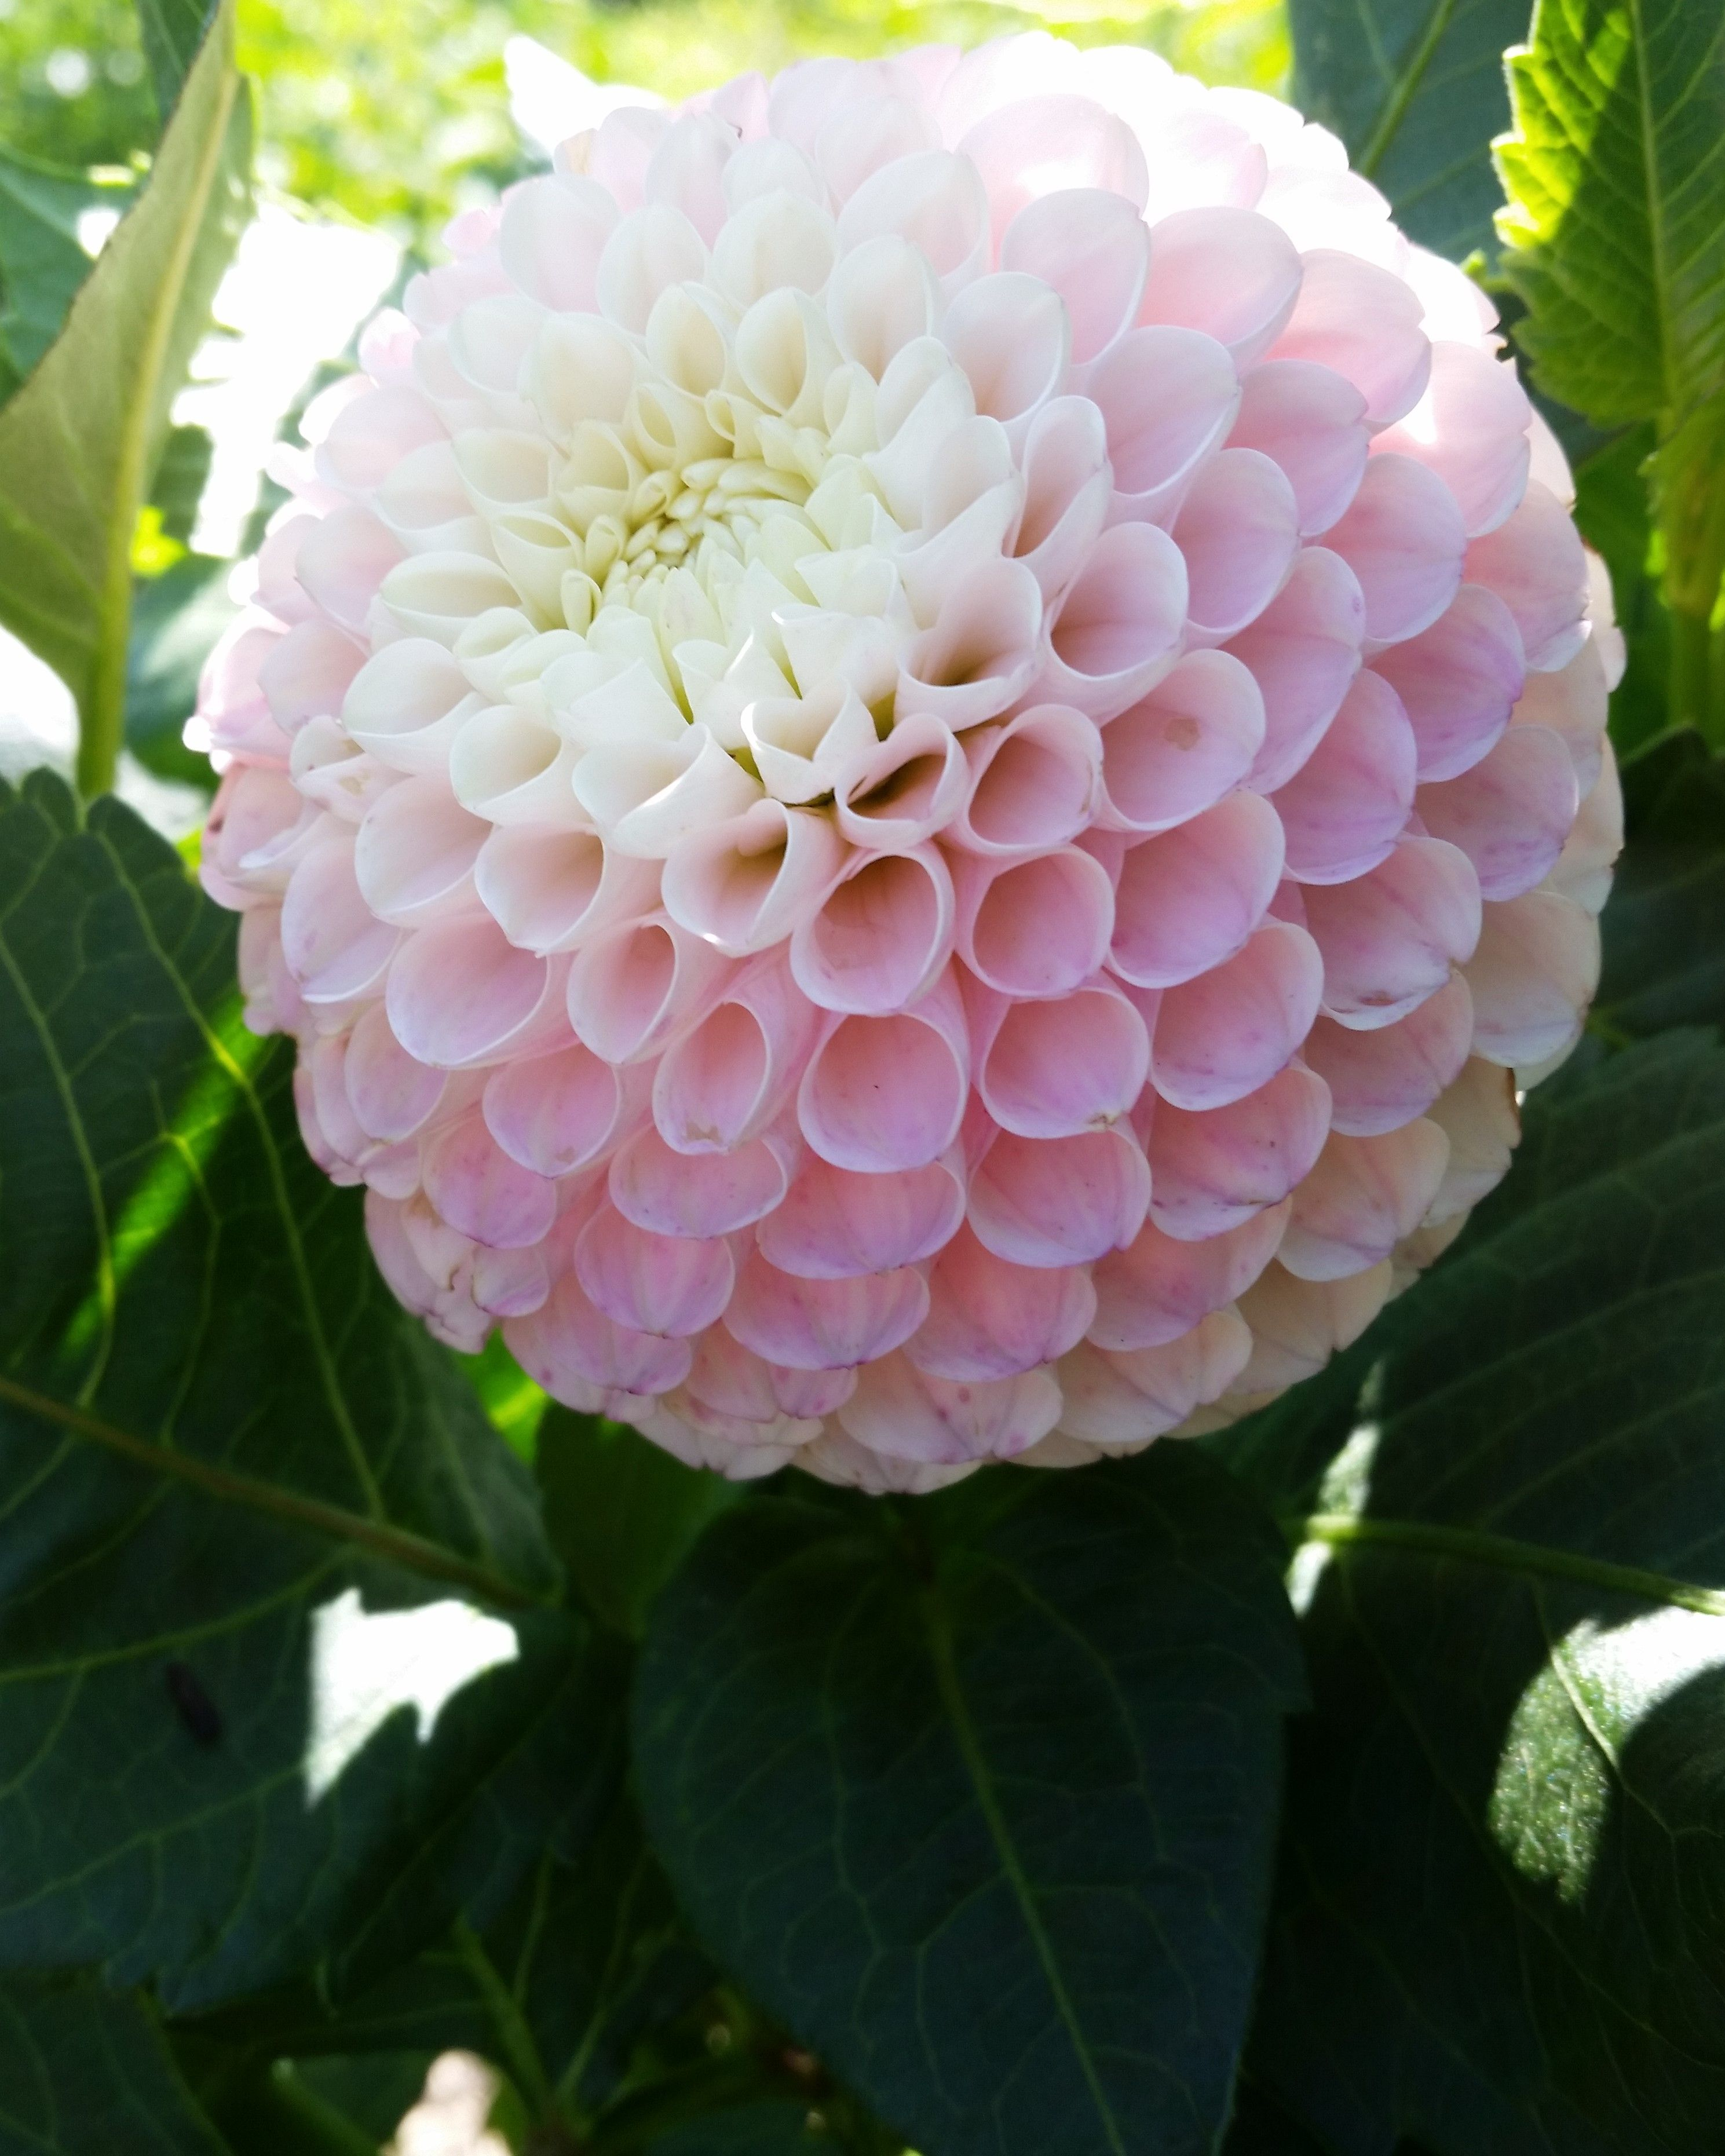 Odyssey Very Pretty Blend Of Light Pink And White On This Miniature Ball Dahlia 2019 Dahlias By Julie Dahlia Flowers Flower Lights